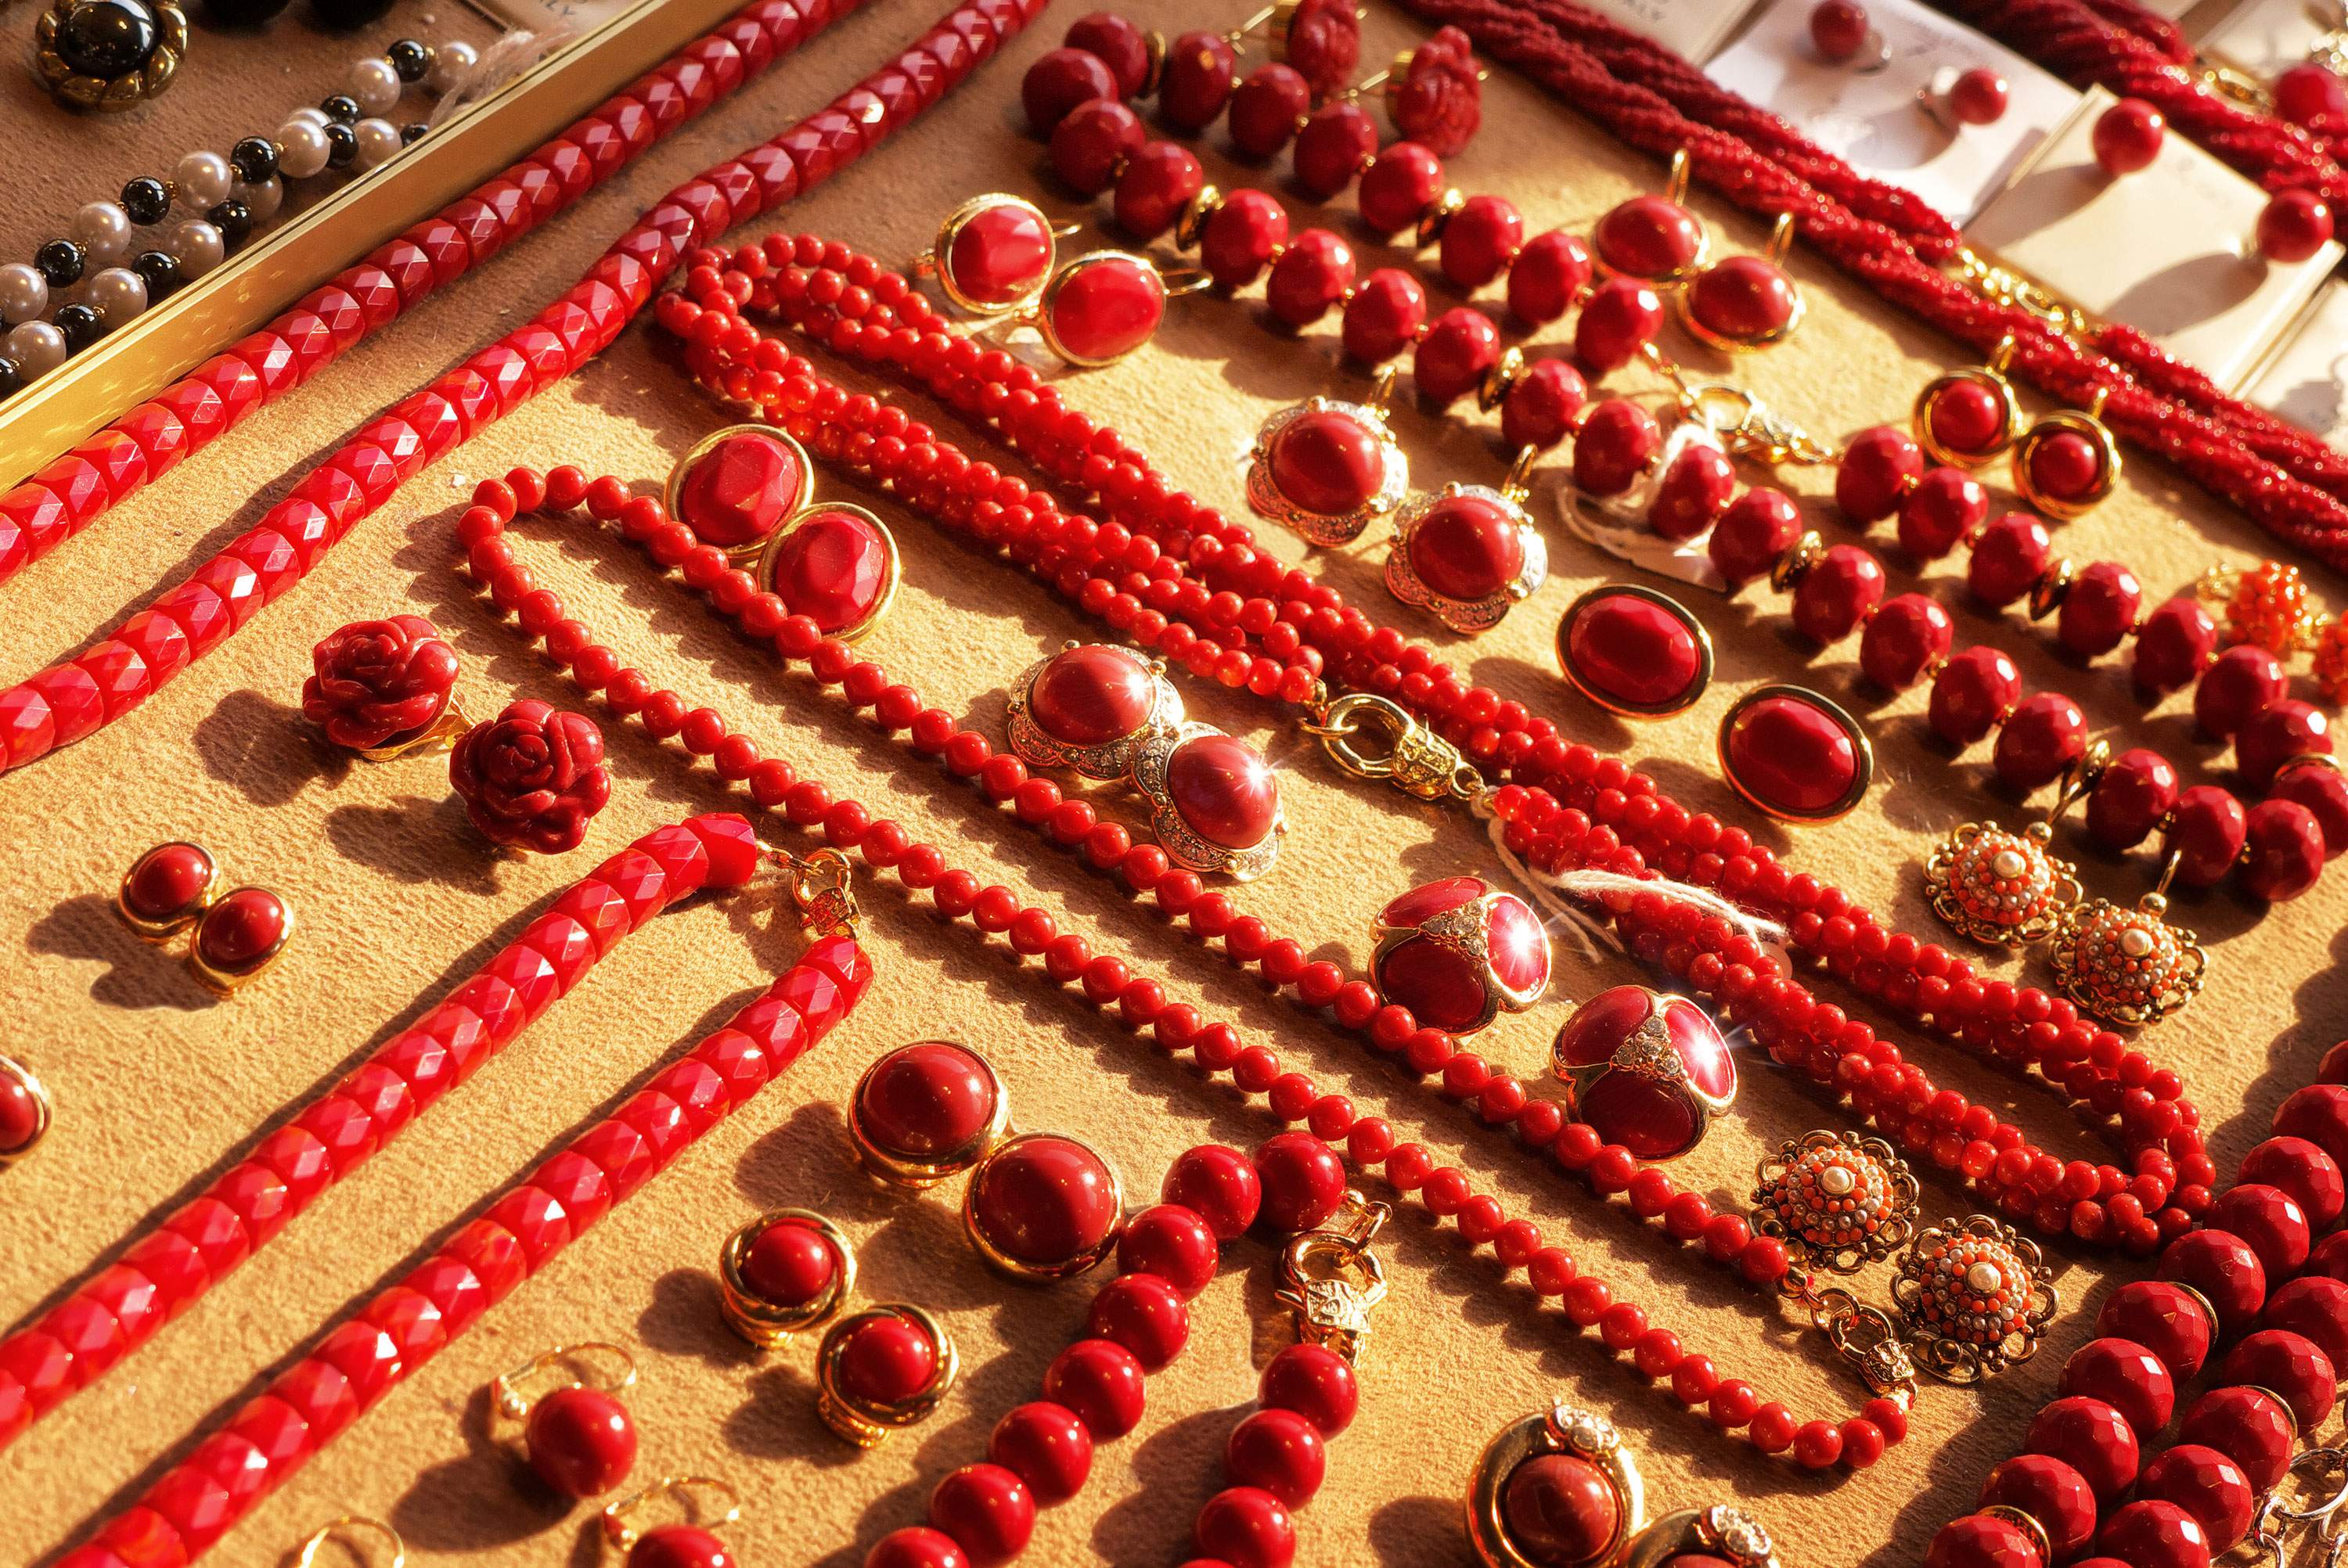 red-coral-precious-mediterranean-craftsmanship-tradition-southern-italy